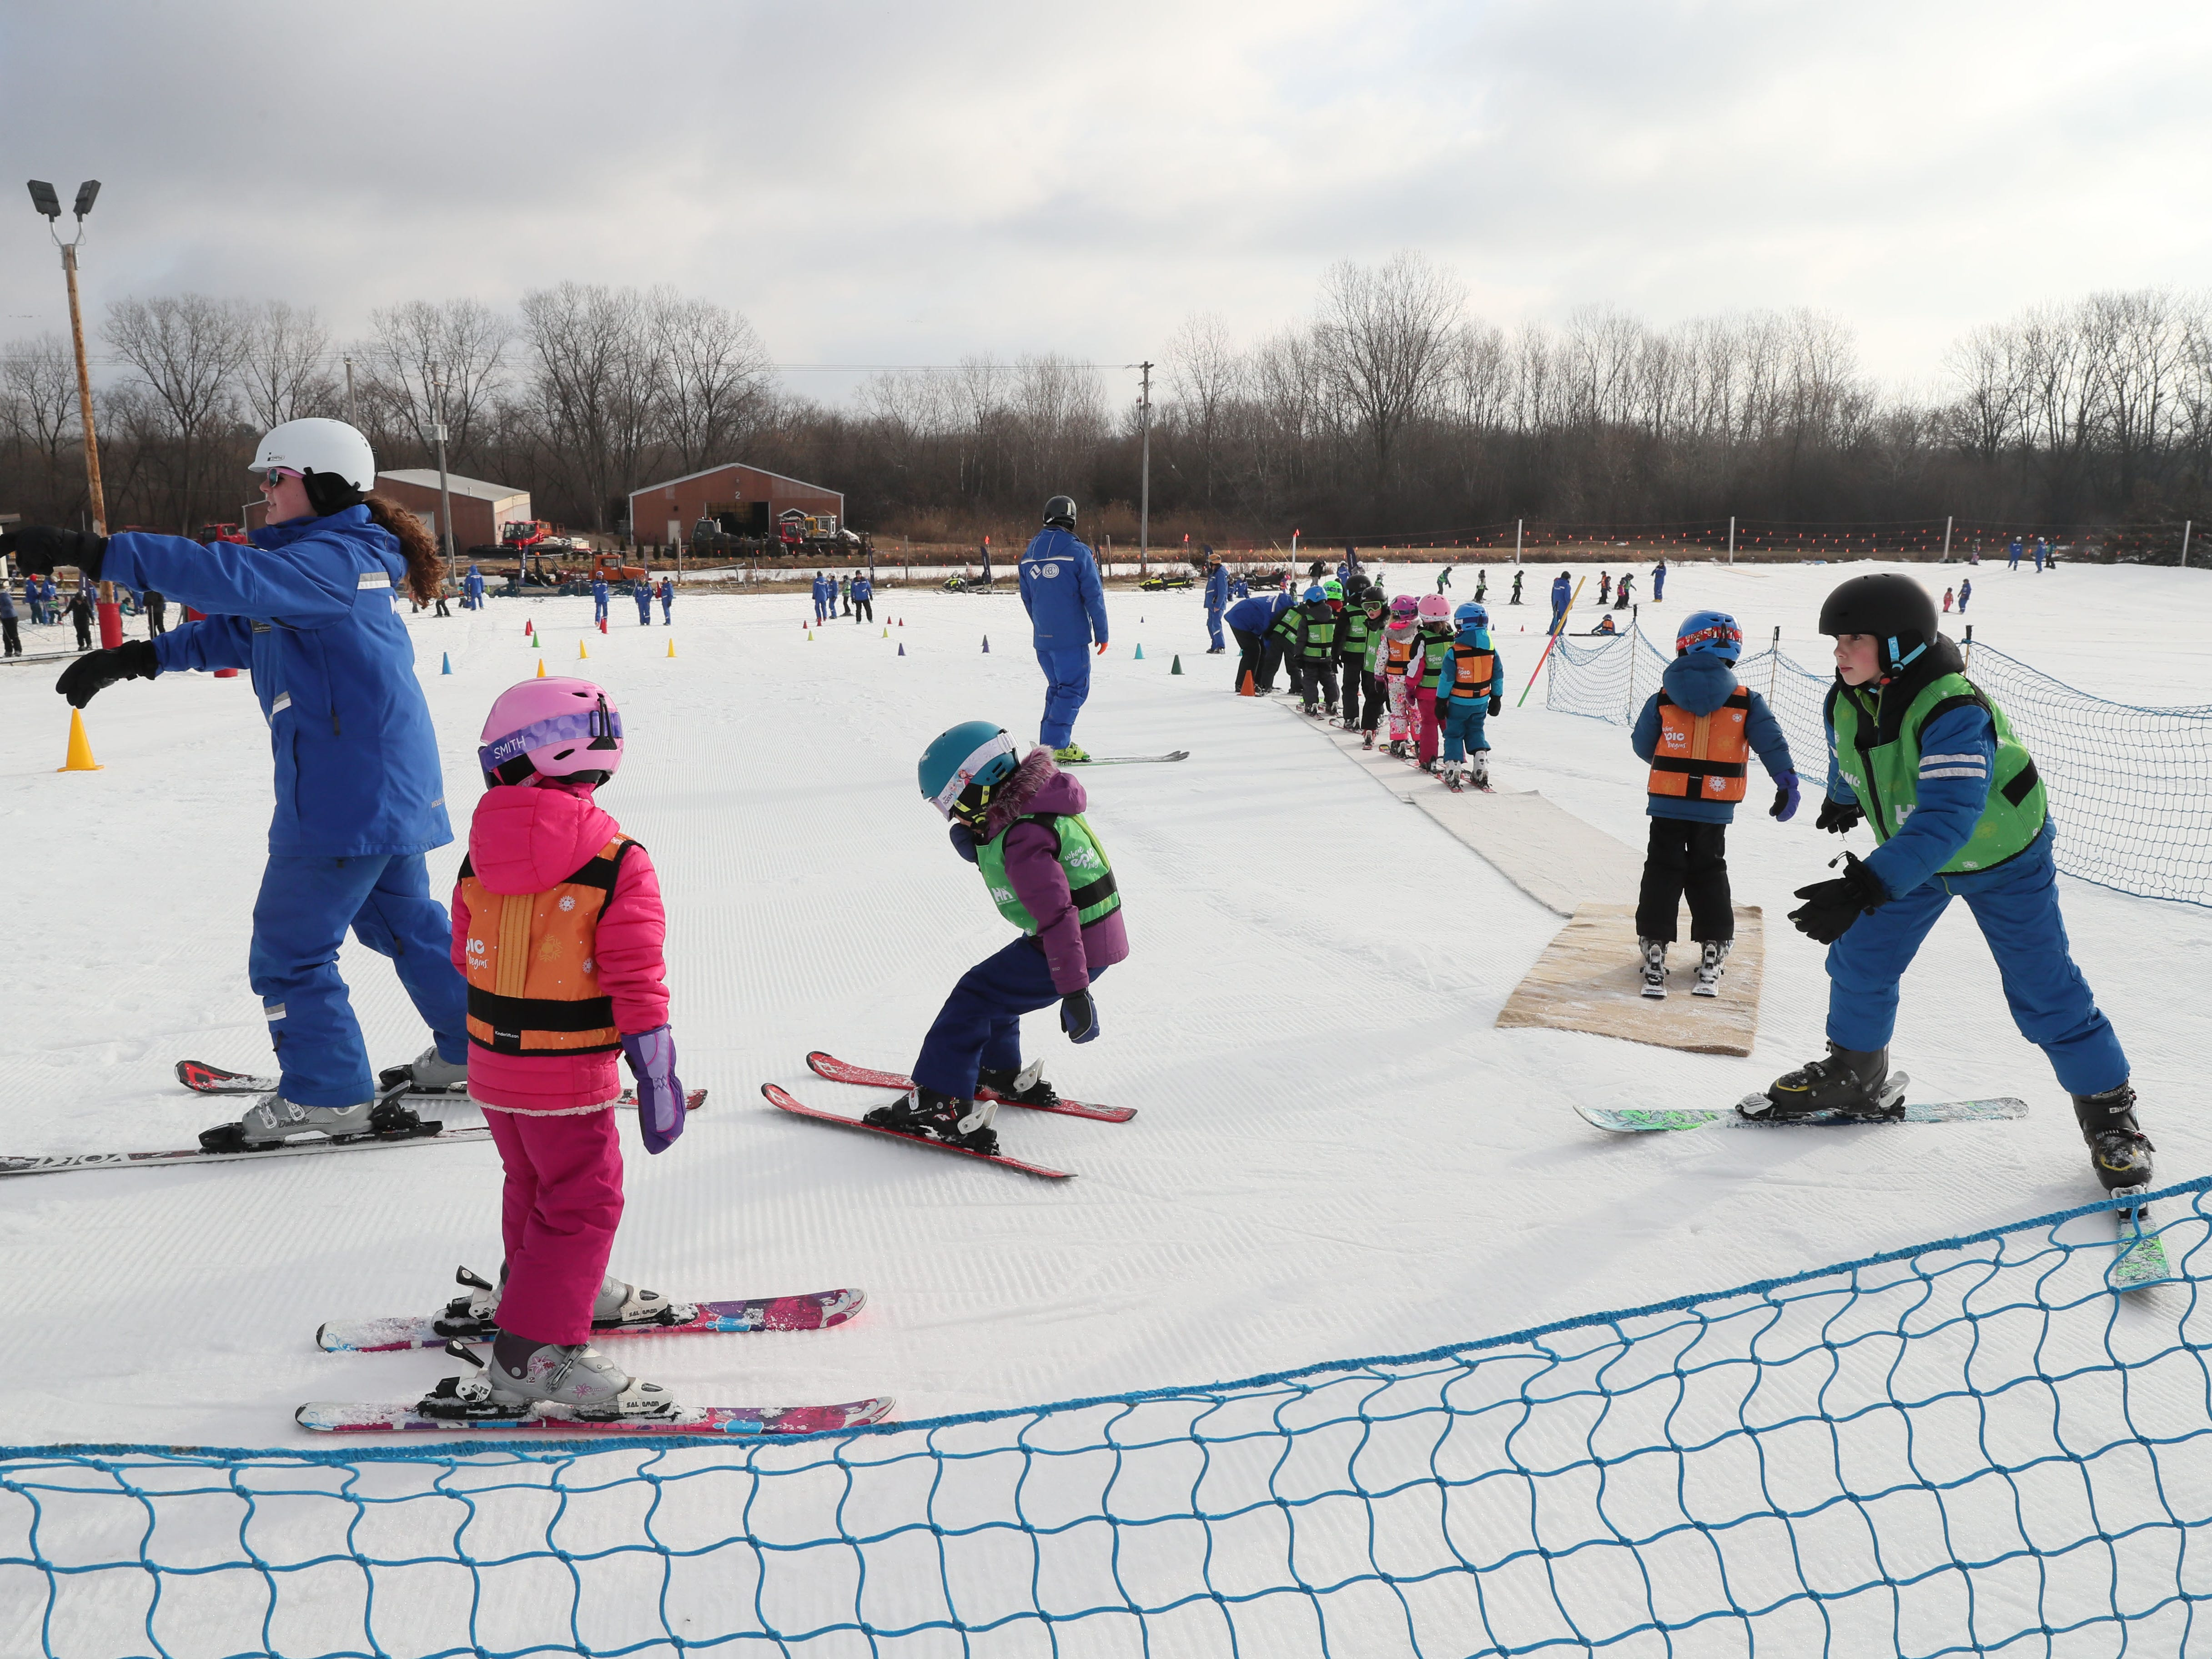 Children take classes to learn to ski at Wilmot Mountain.